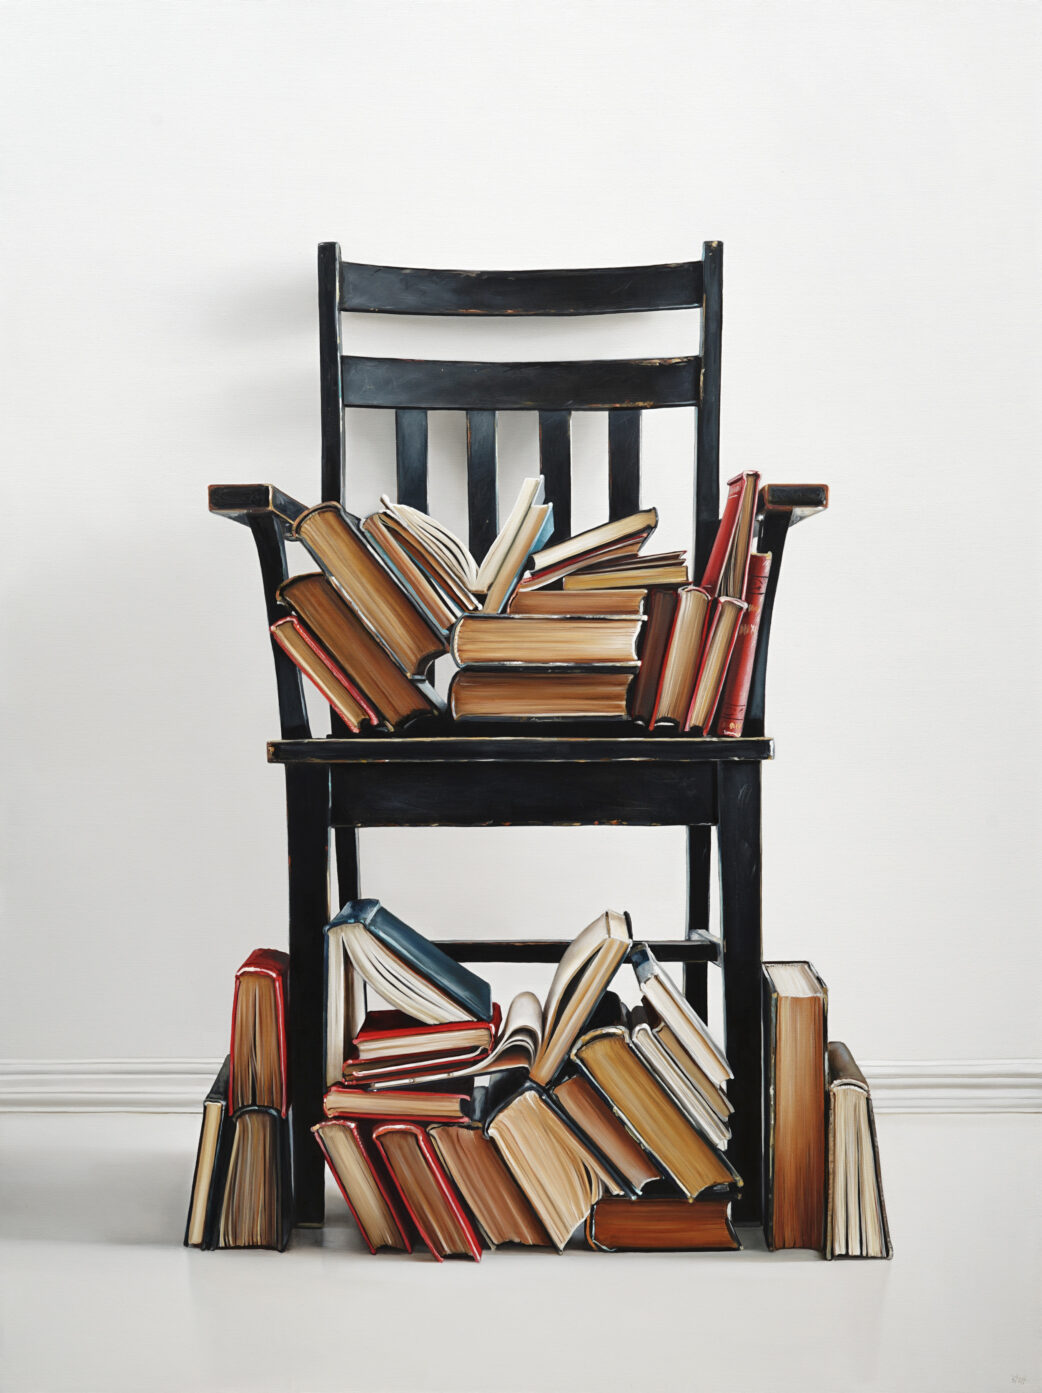 Lindstrom Chair with Books painting by Christopher Stott